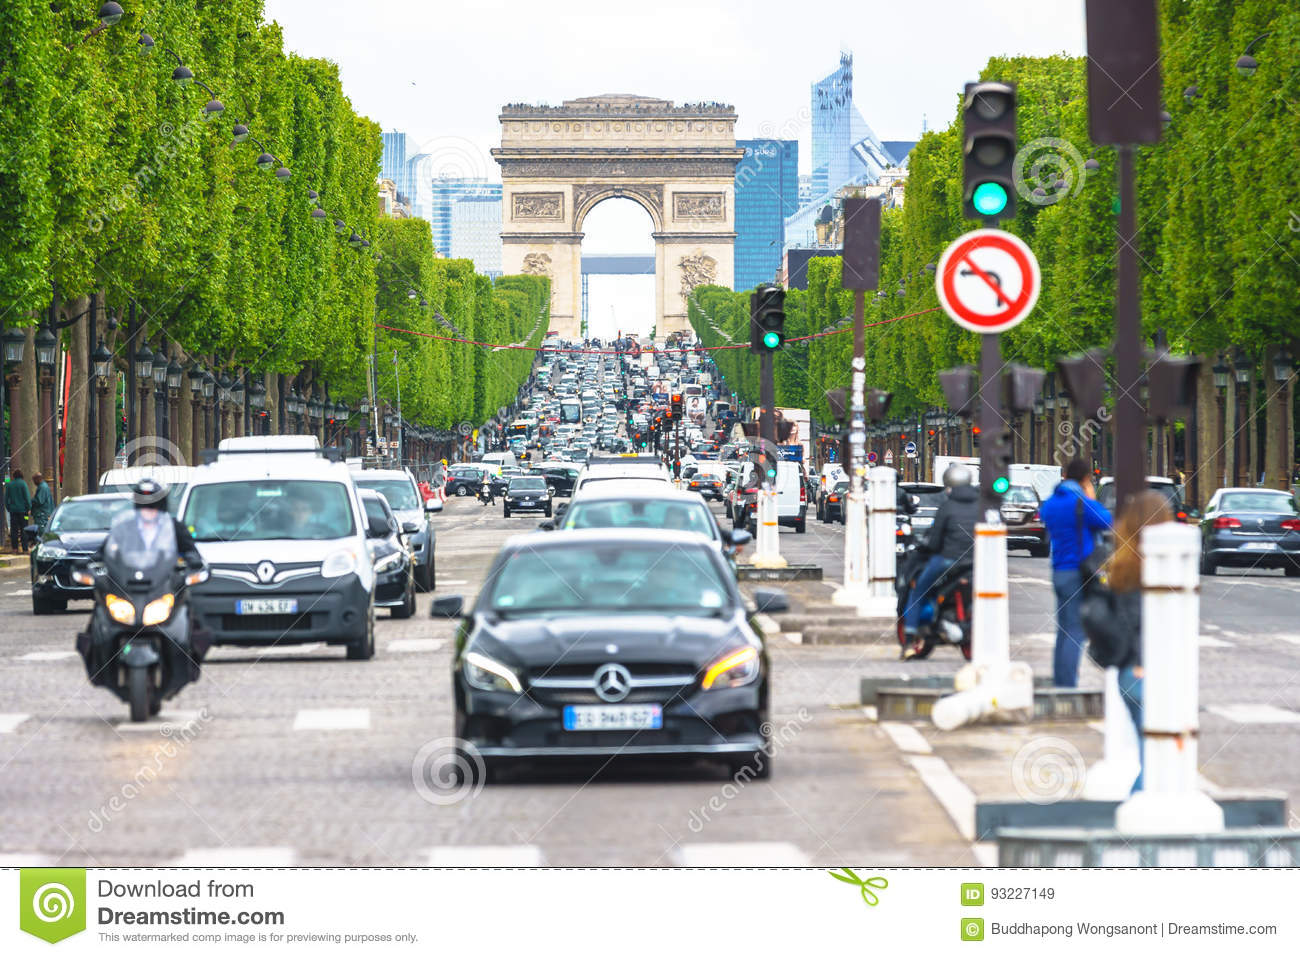 Paris, France - May 3, 2017: Road traffic conditions of Champs-Elysees Avenue views from Place de la Concord on May 3, 2017, in P